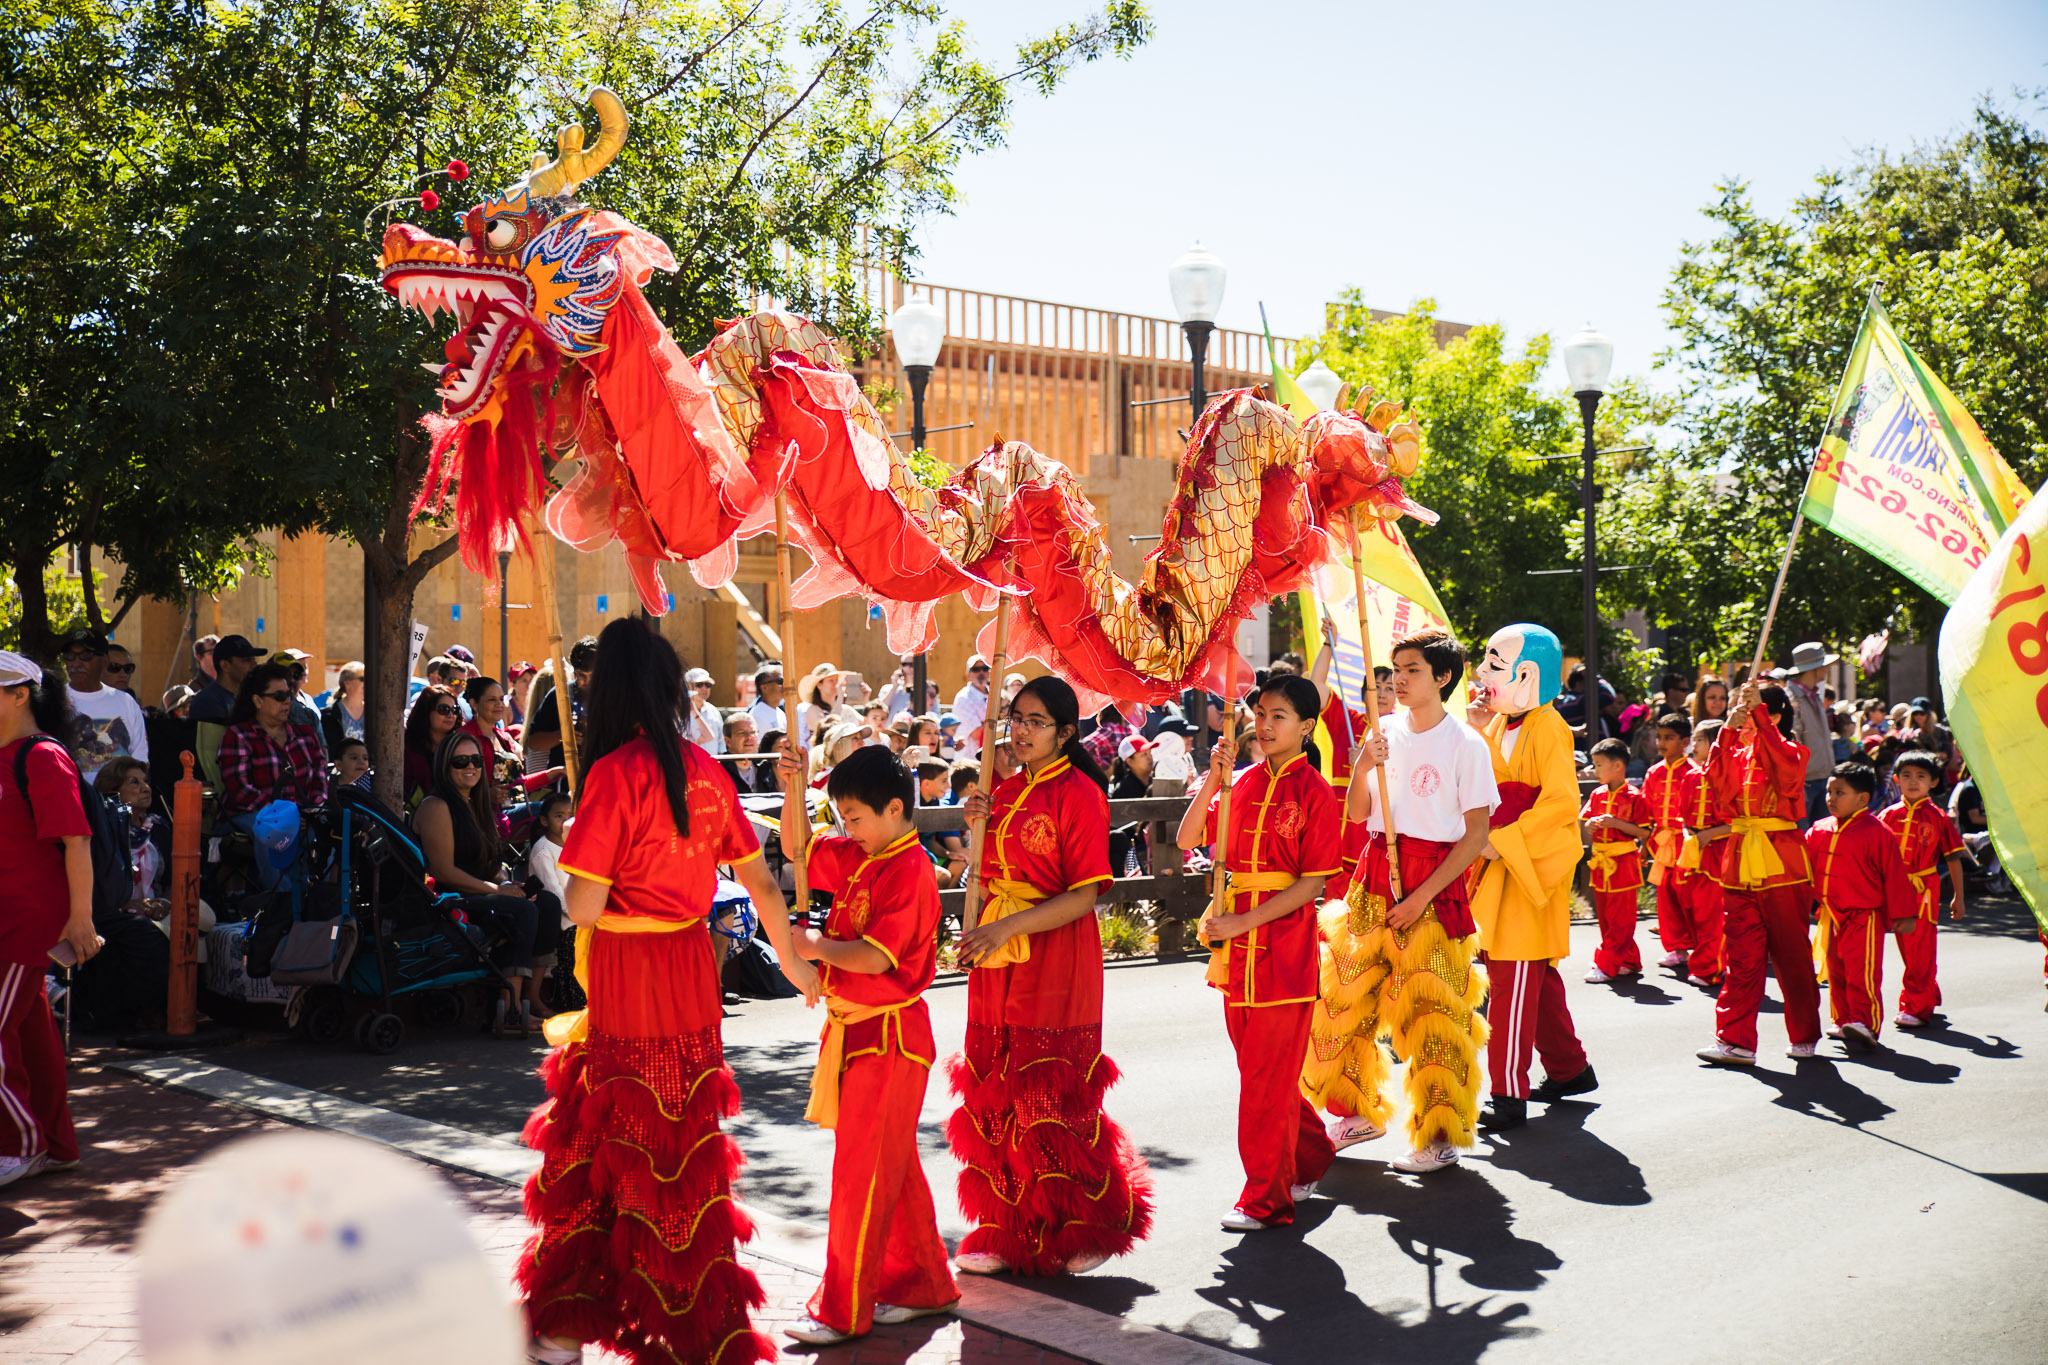 Archer_Inspired_Photography_Morgan_Hill_California_4th_of_july_parade-87.jpg